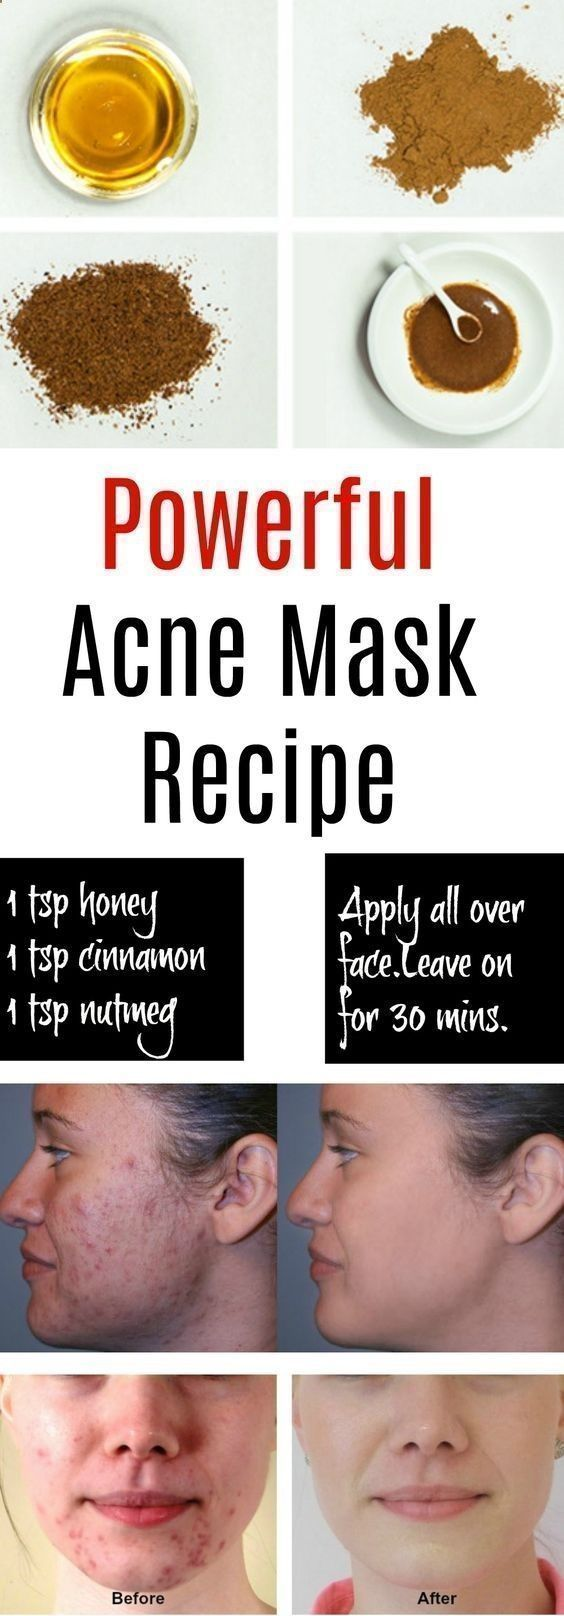 What to put on a pimple overnight